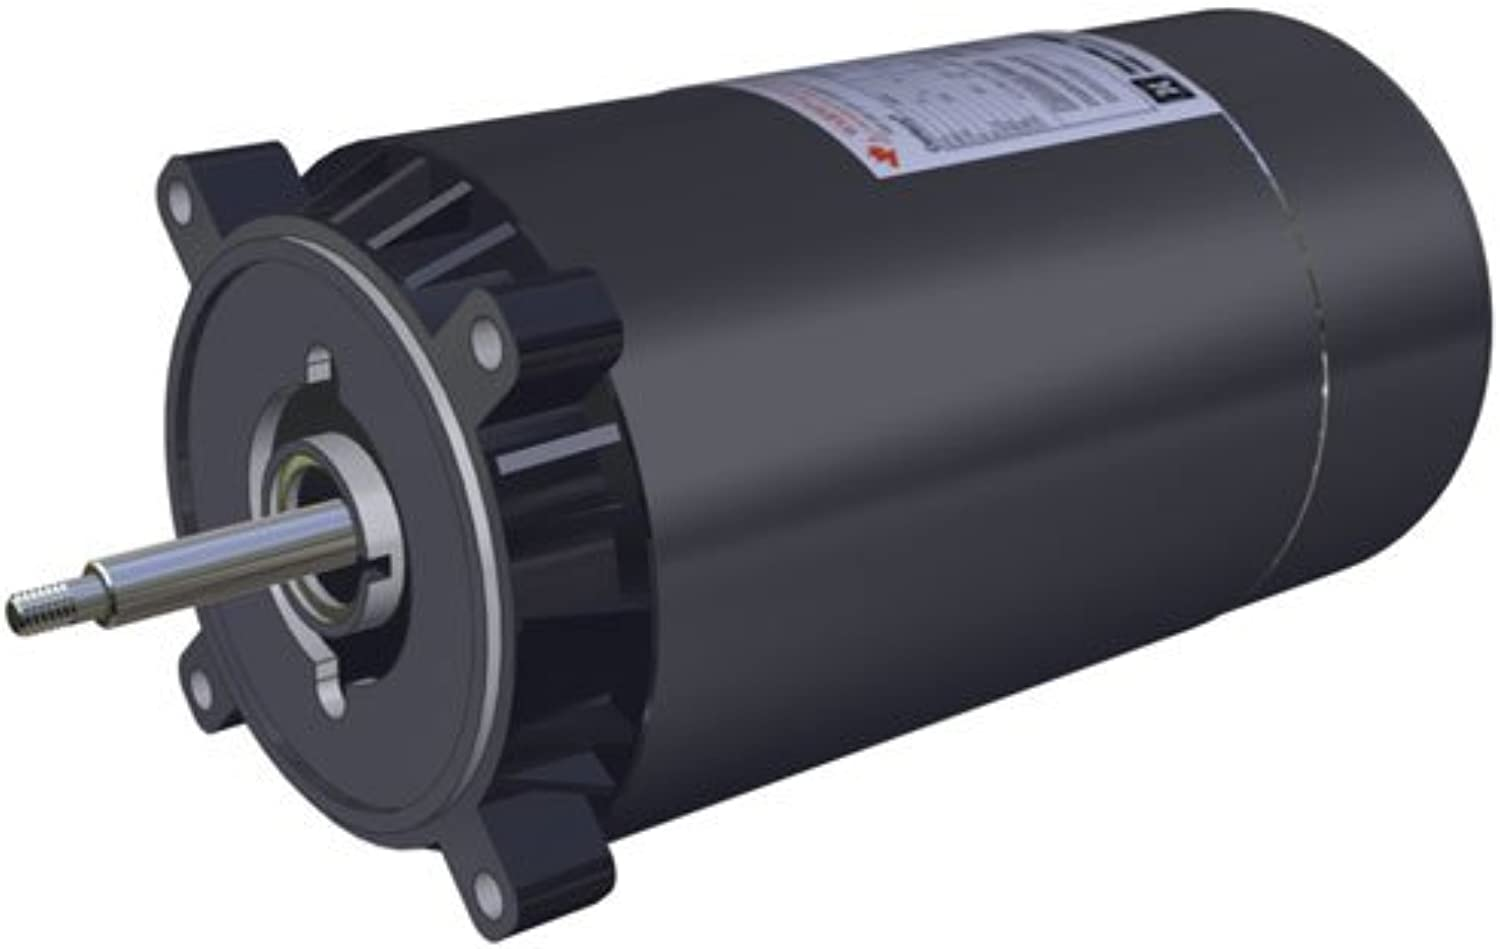 Hayward SPX1625Z1M 3HP Maxrate Motor Replacement for Hayward Super II Pumps